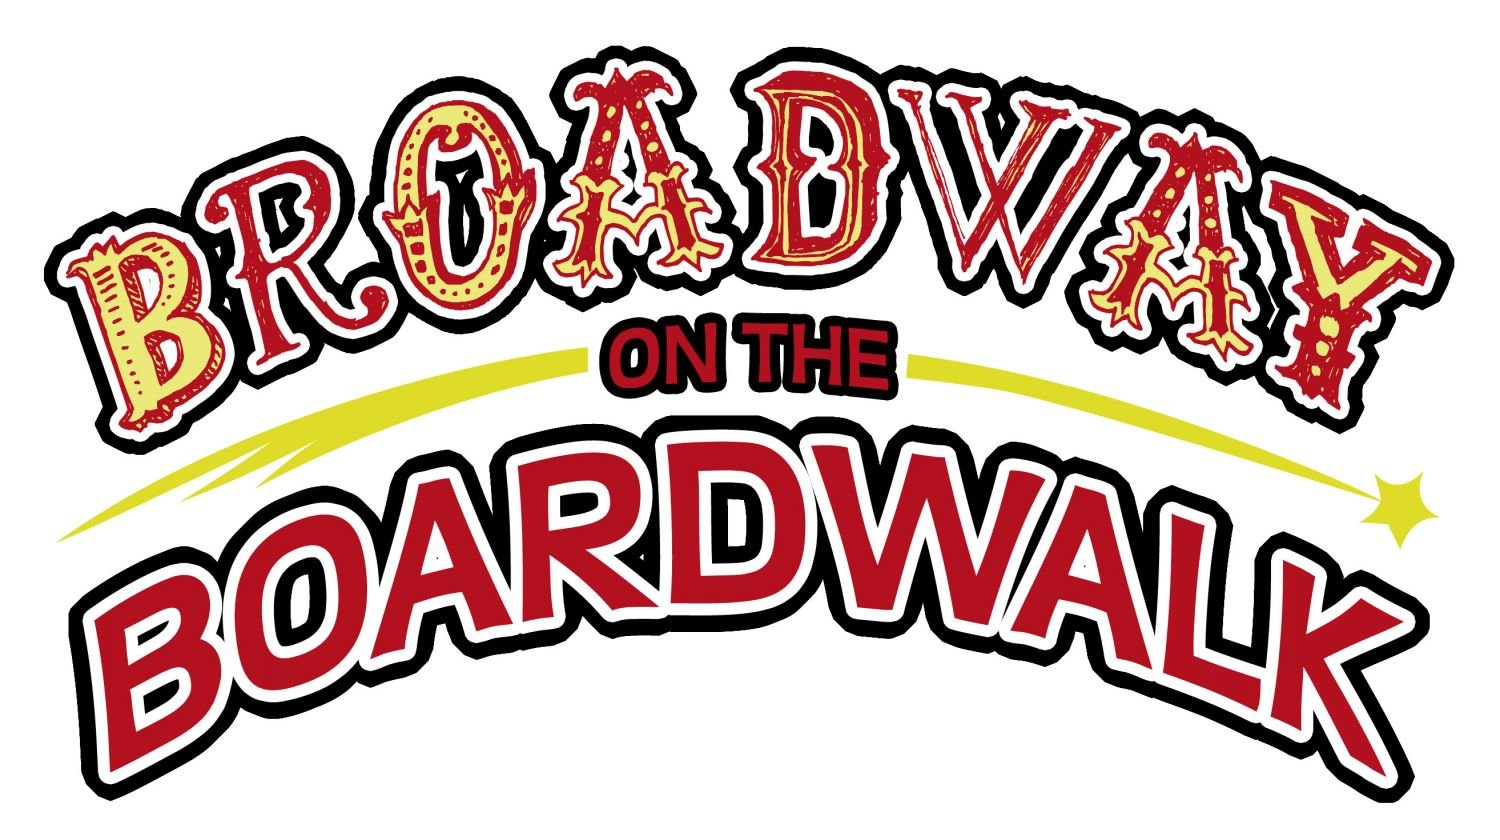 Broadway on the OC Boardwalk presented by the Ocean City Theatre Company